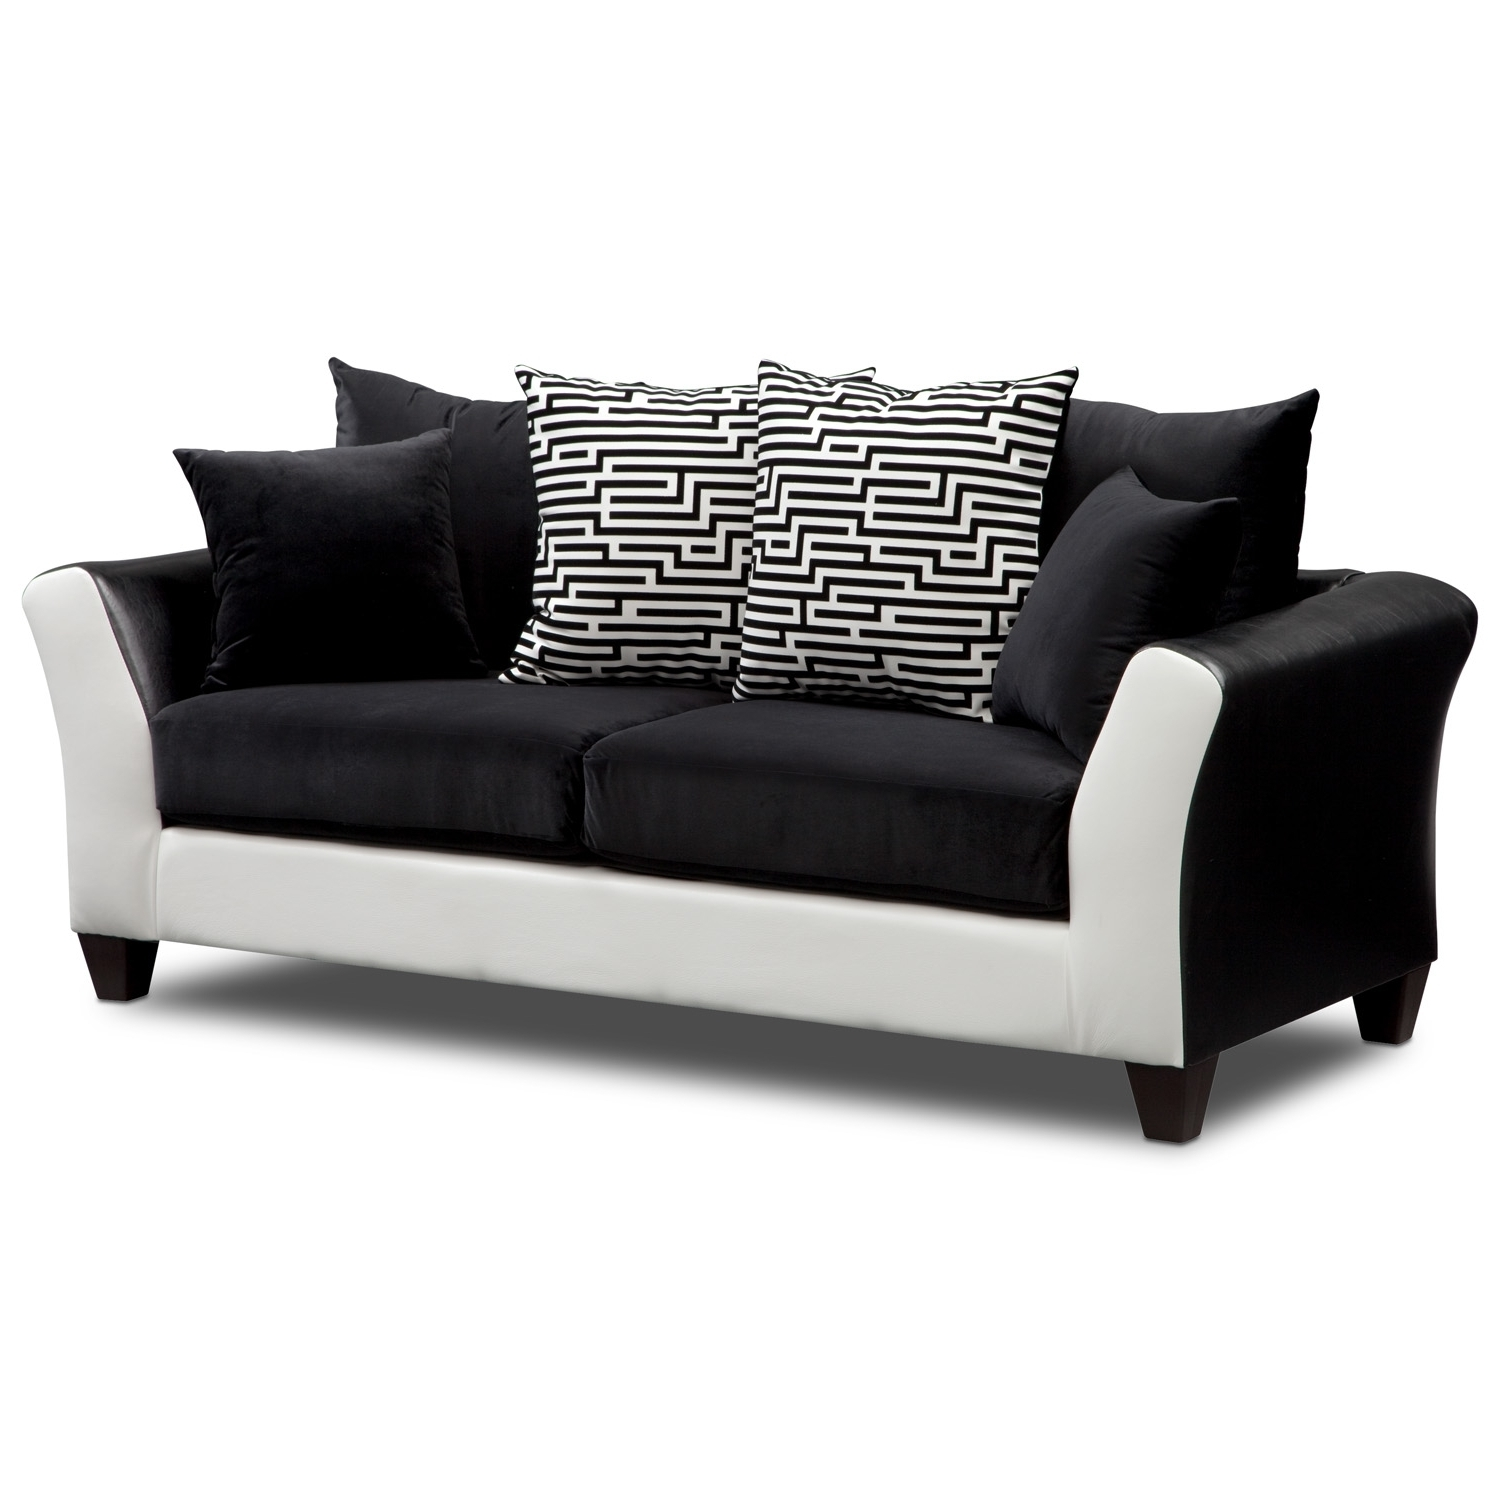 Value City Sofas in Widely used Smart Idea Value City Furniture Sofas Gray At Sofa Sleeper Couches